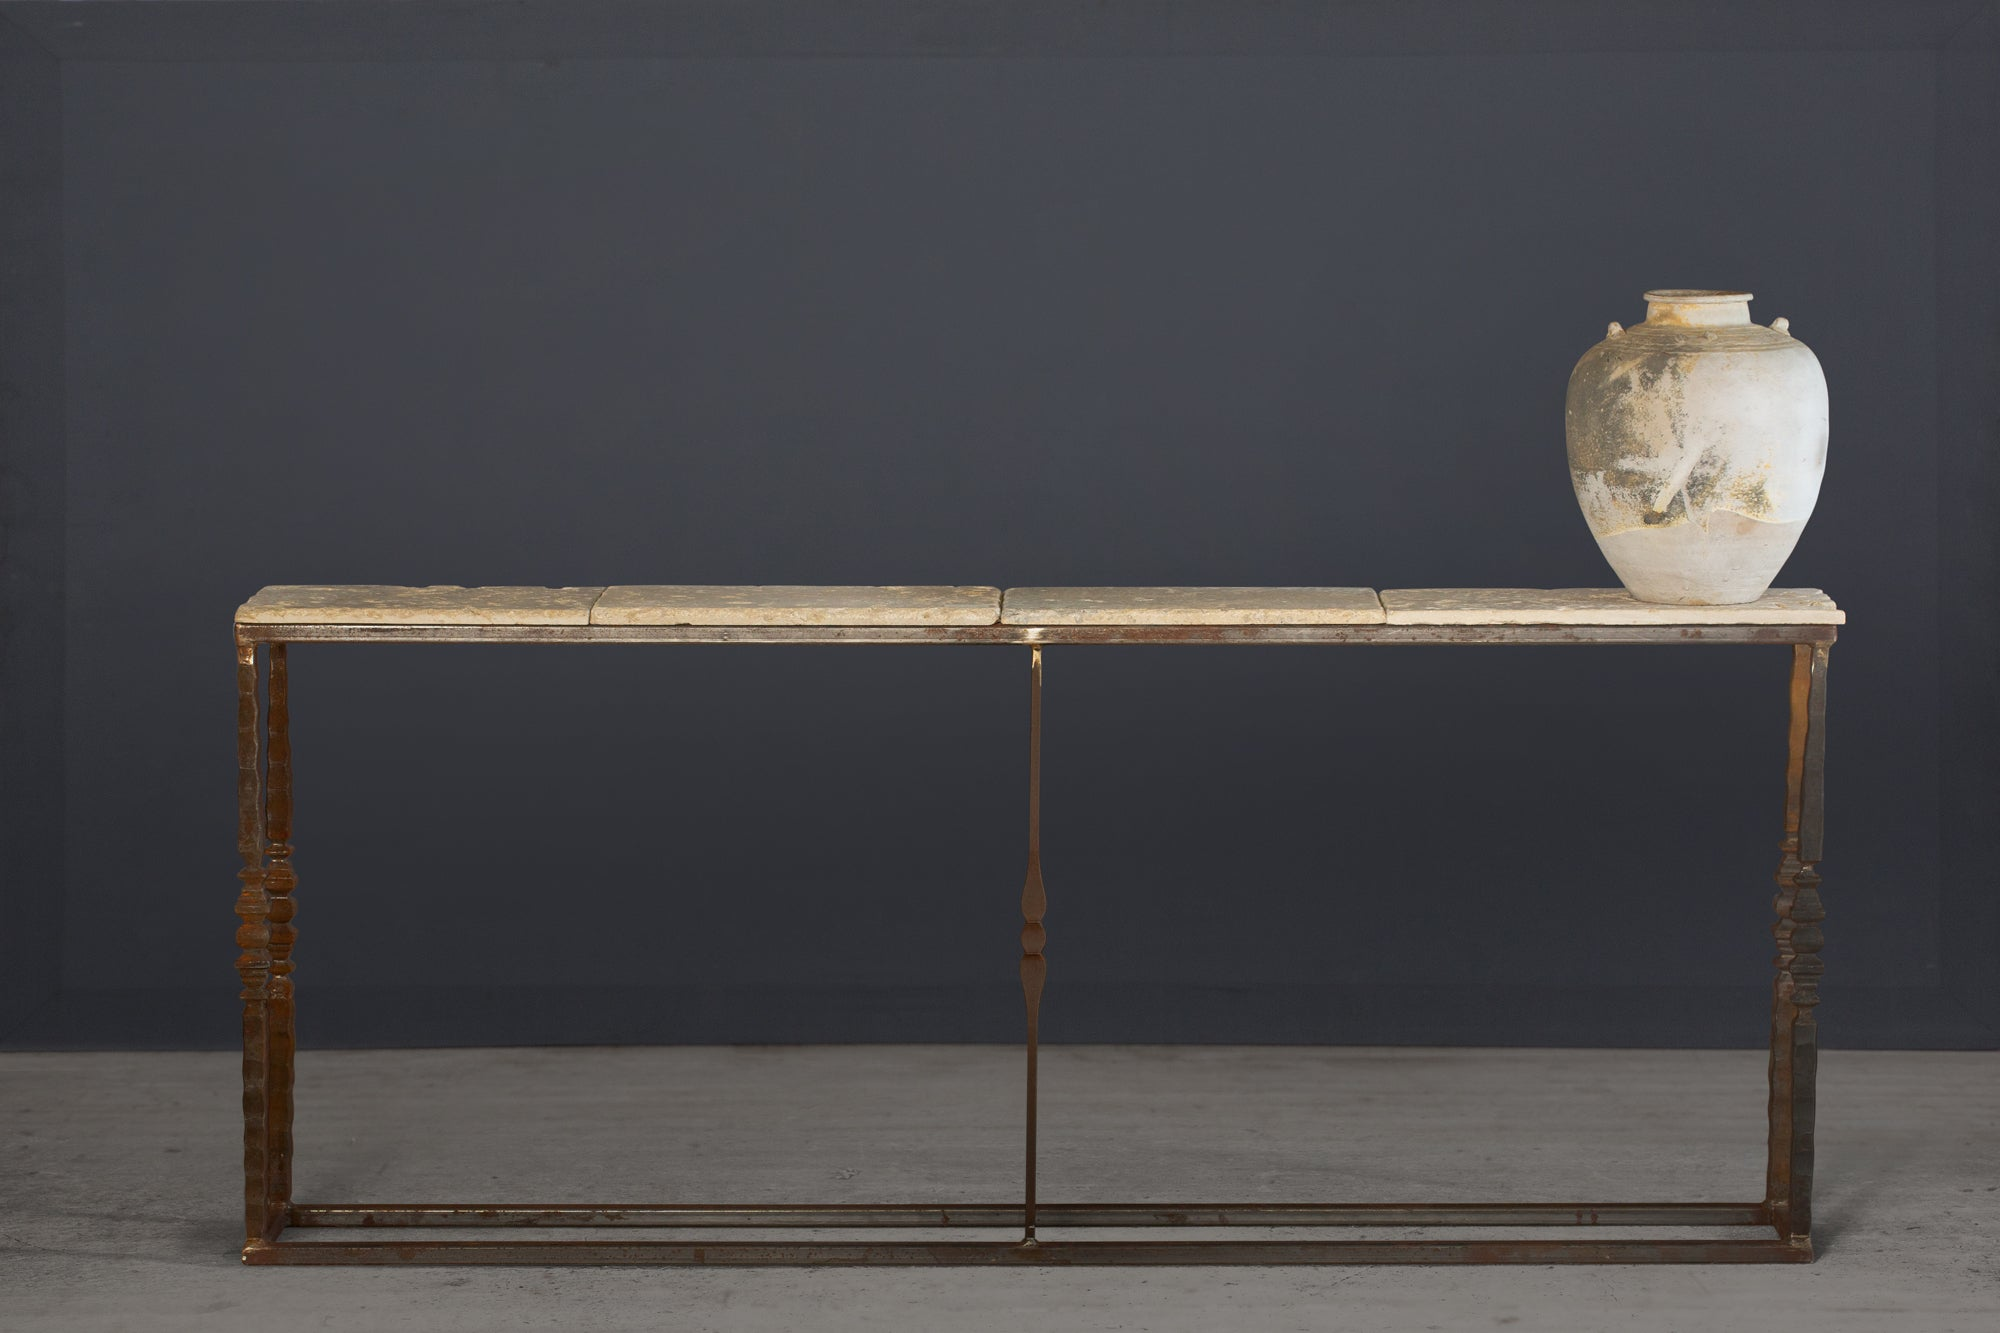 Bespoke Skinny Iron Base Console Table with a French Marble Top